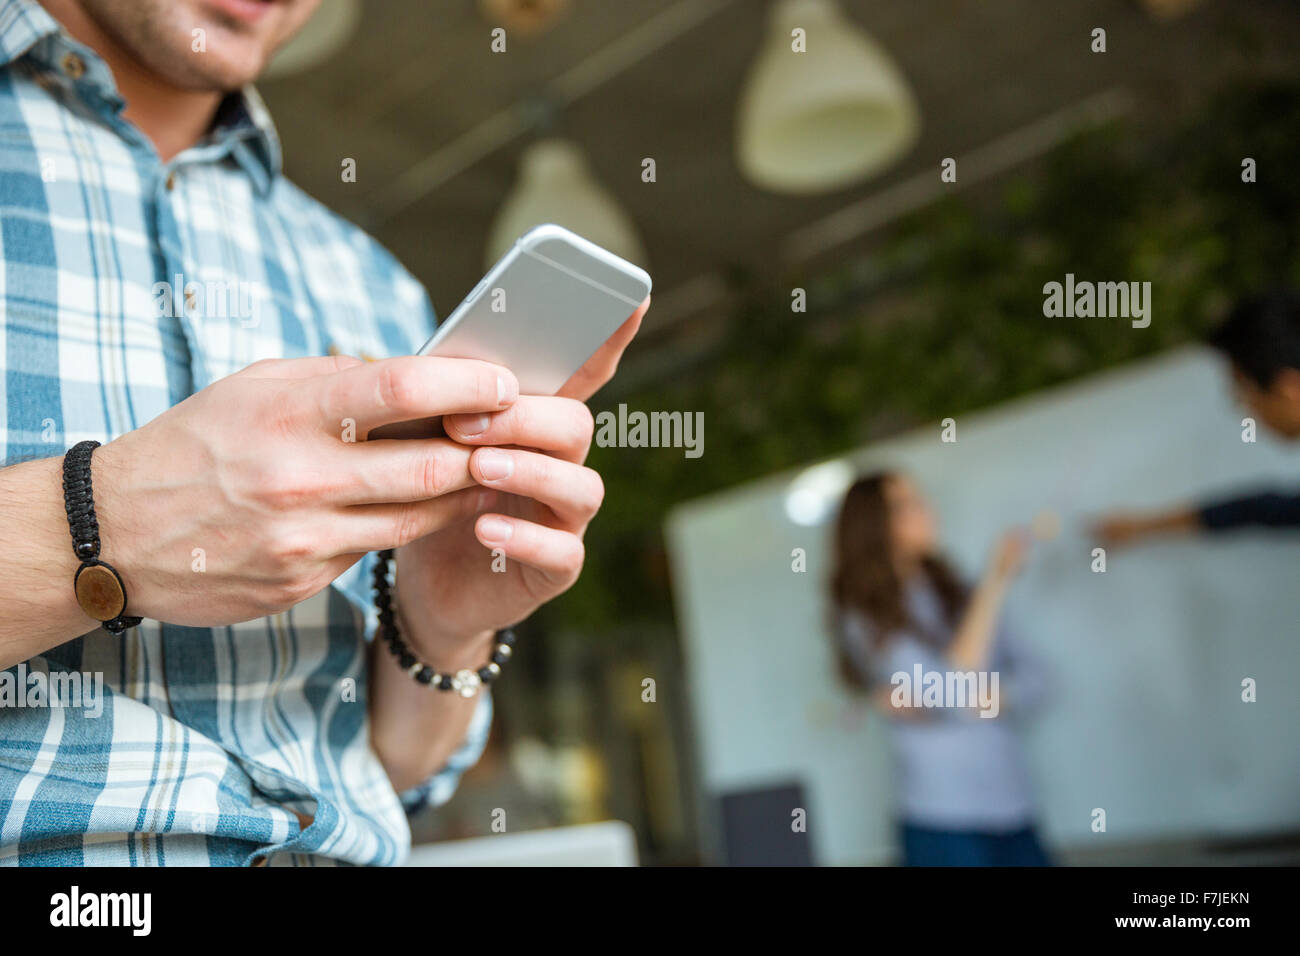 Closeup of hands of young man in checkered shirt using mobile phone while his partners arguing - Stock Image